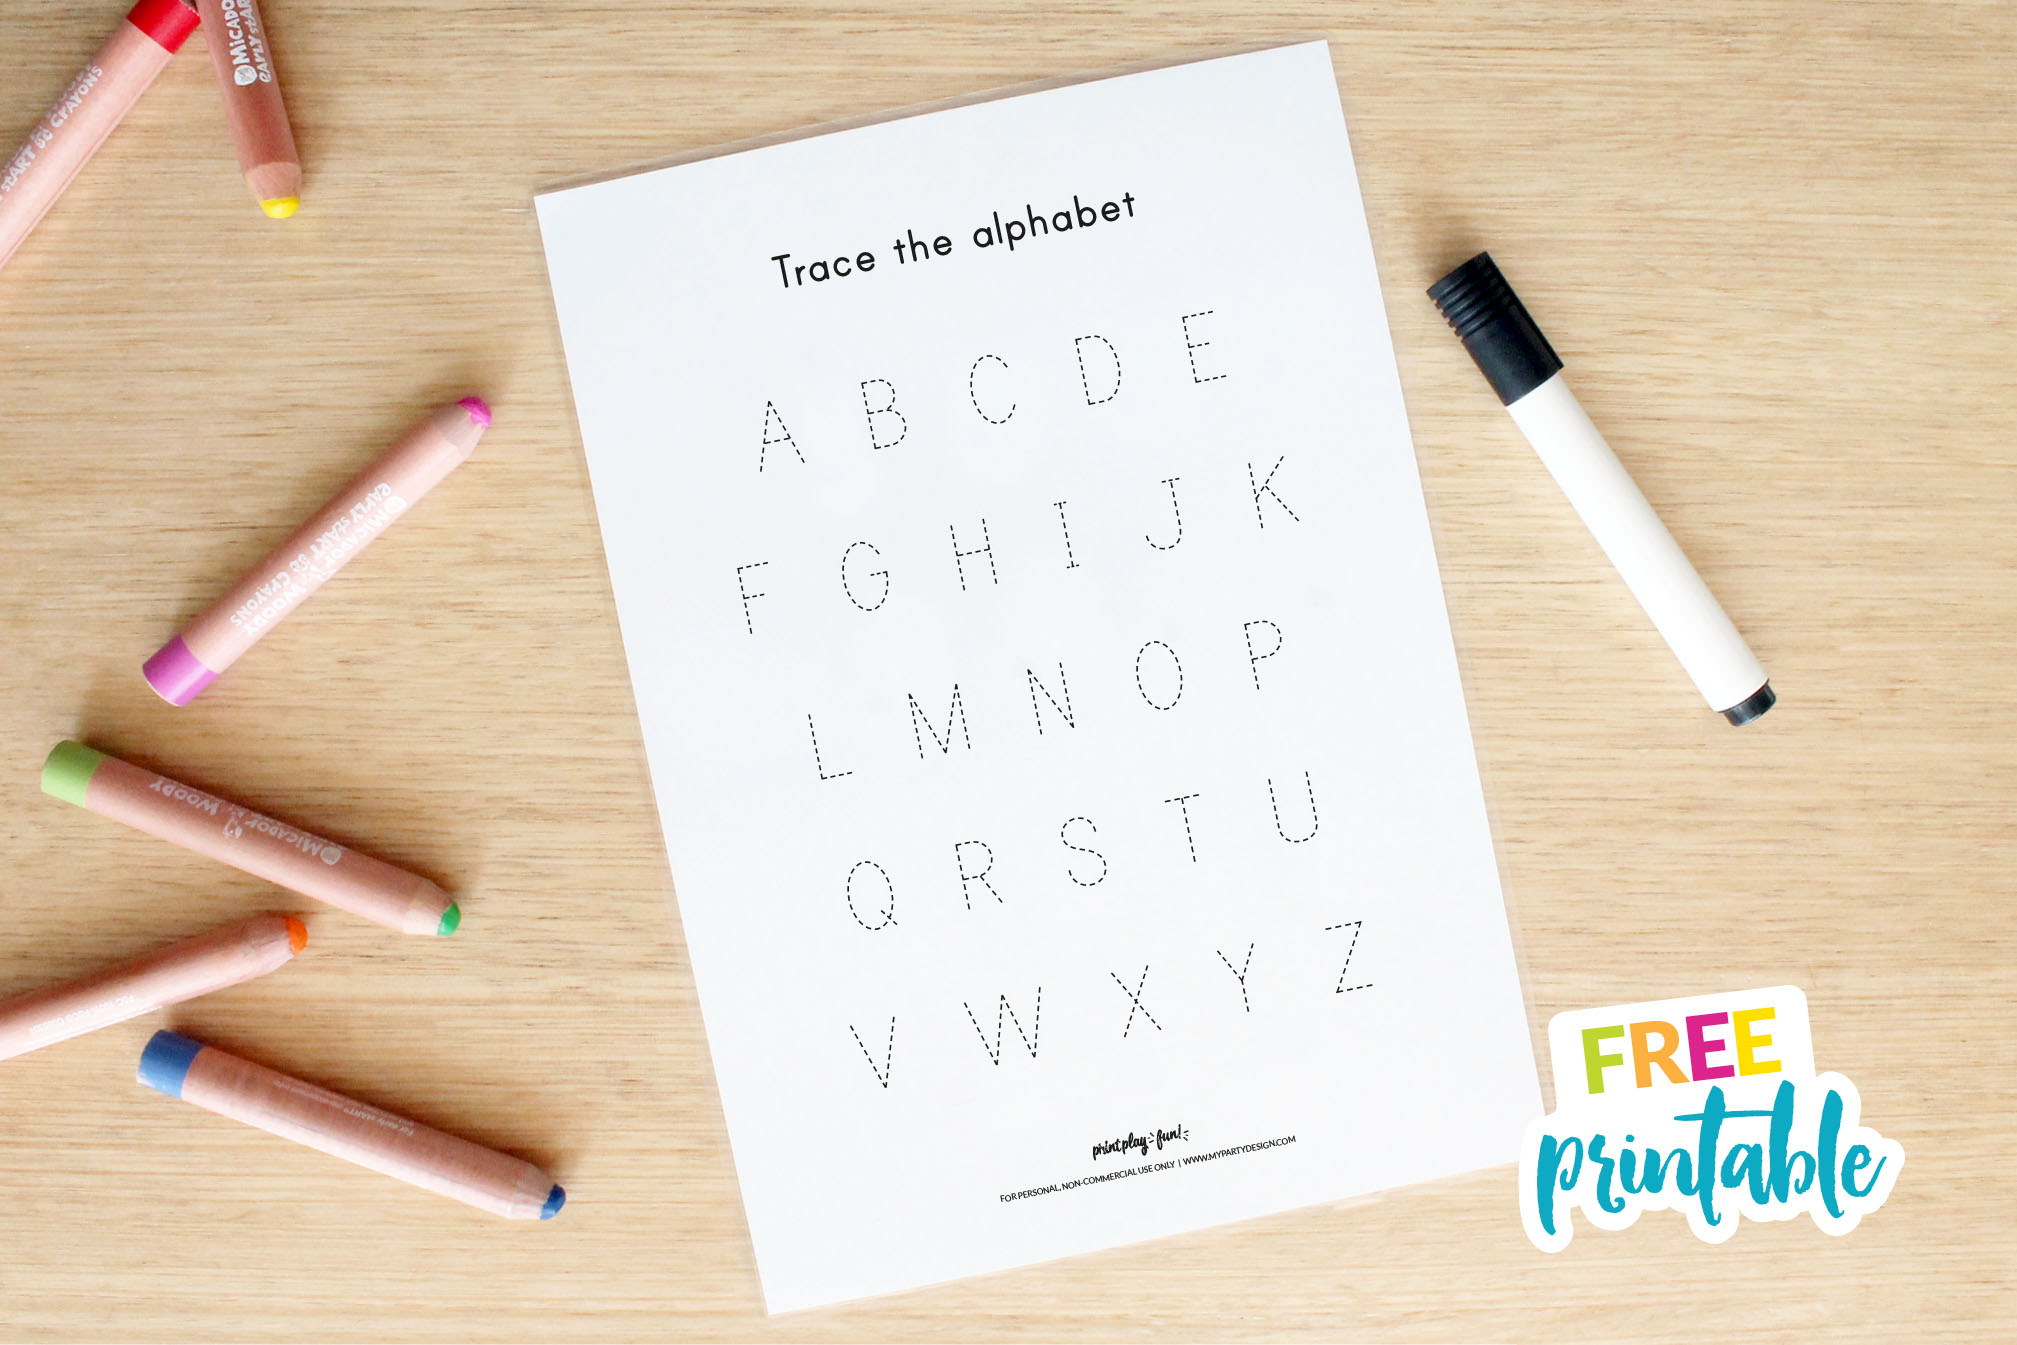 Free Name And Alphabet Tracing Mat   My Party Design with Alphabet Tracing Mat